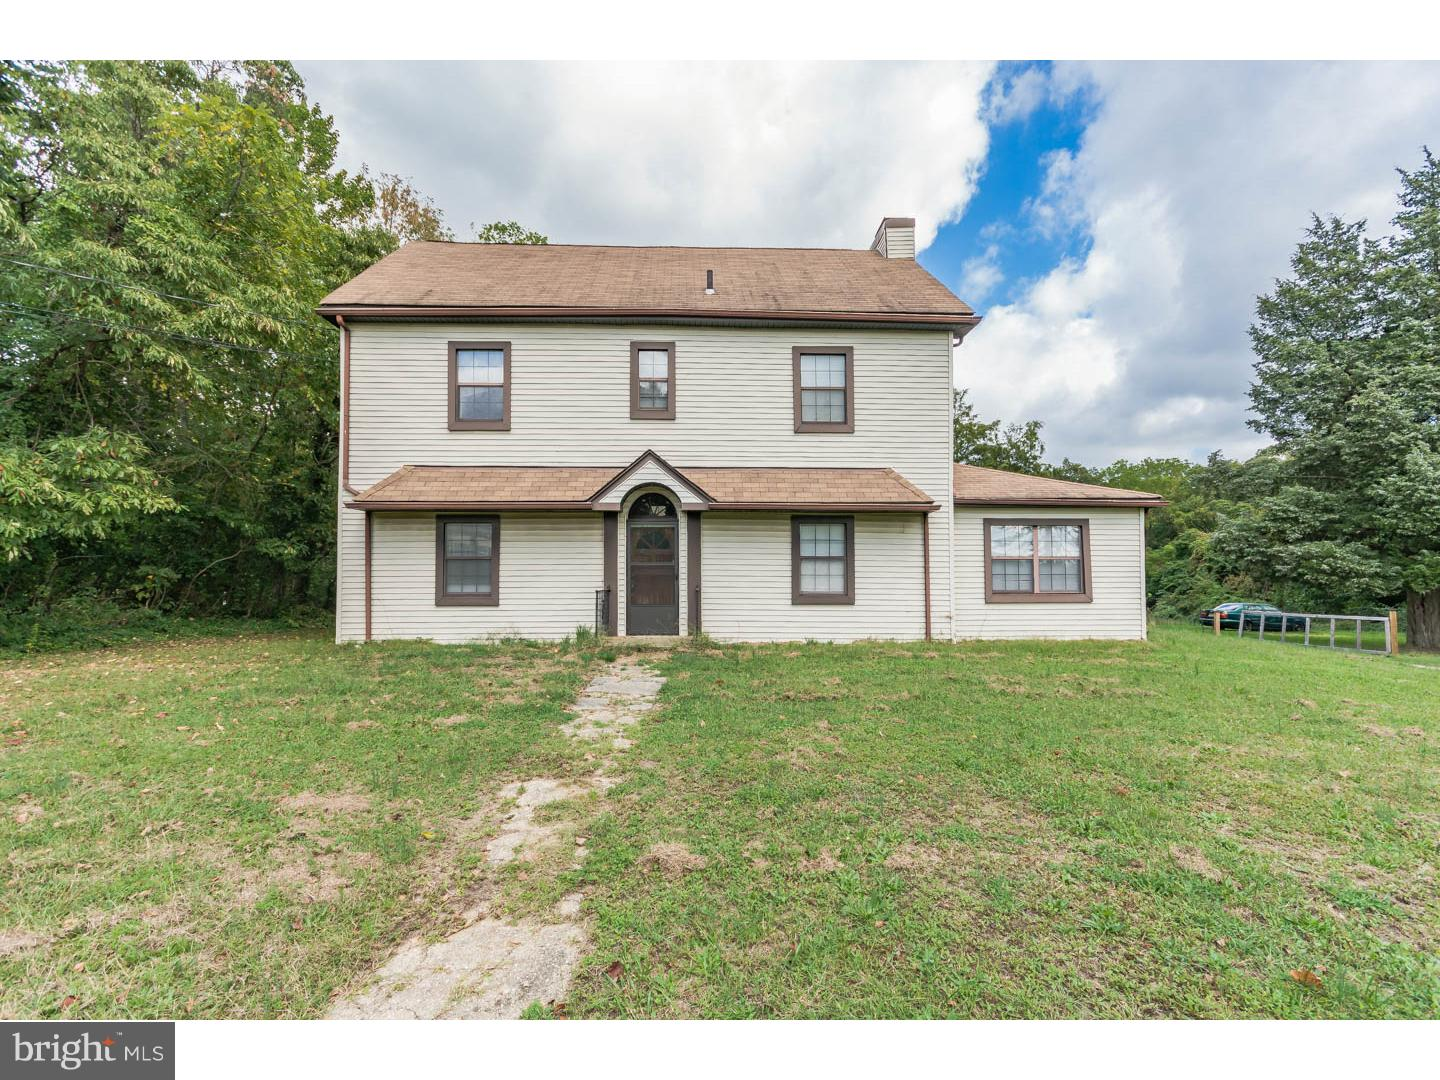 Single Family Home for Sale at 147 S BLACK HORSE PIKE Blackwood, New Jersey 08012 United States